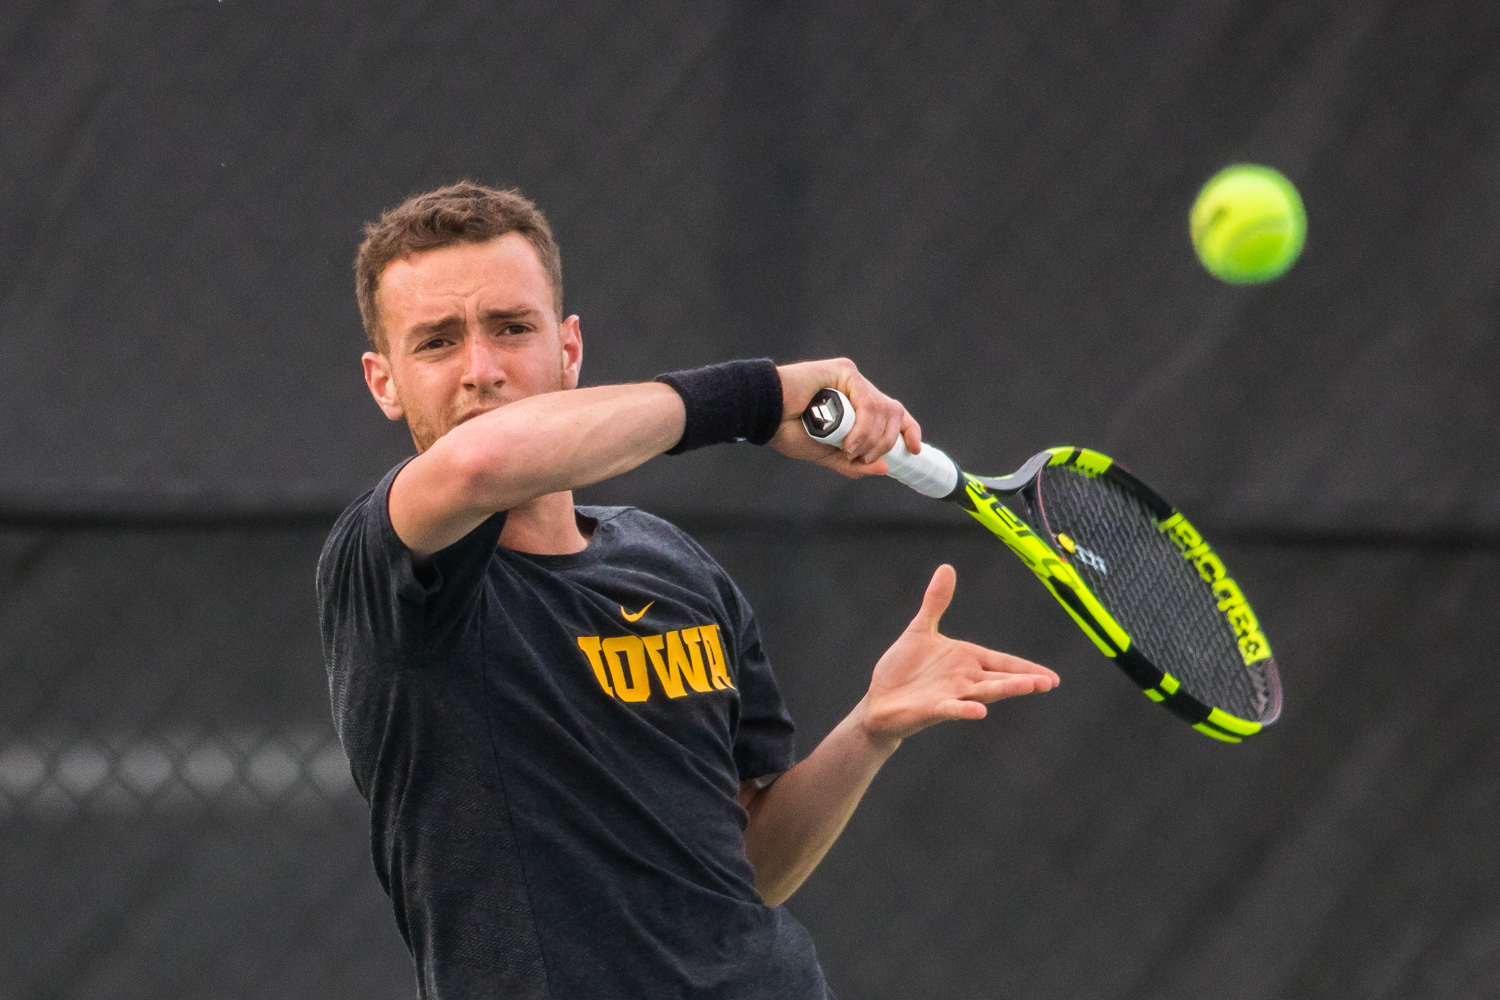 Iowa's Kareem Allaf hits a forehand during a men's tennis match between Iowa and Illinois State at the HTRC on Sunday, April 21, 2019. The Hawkeyes defeated the Redbirds, 6-1.